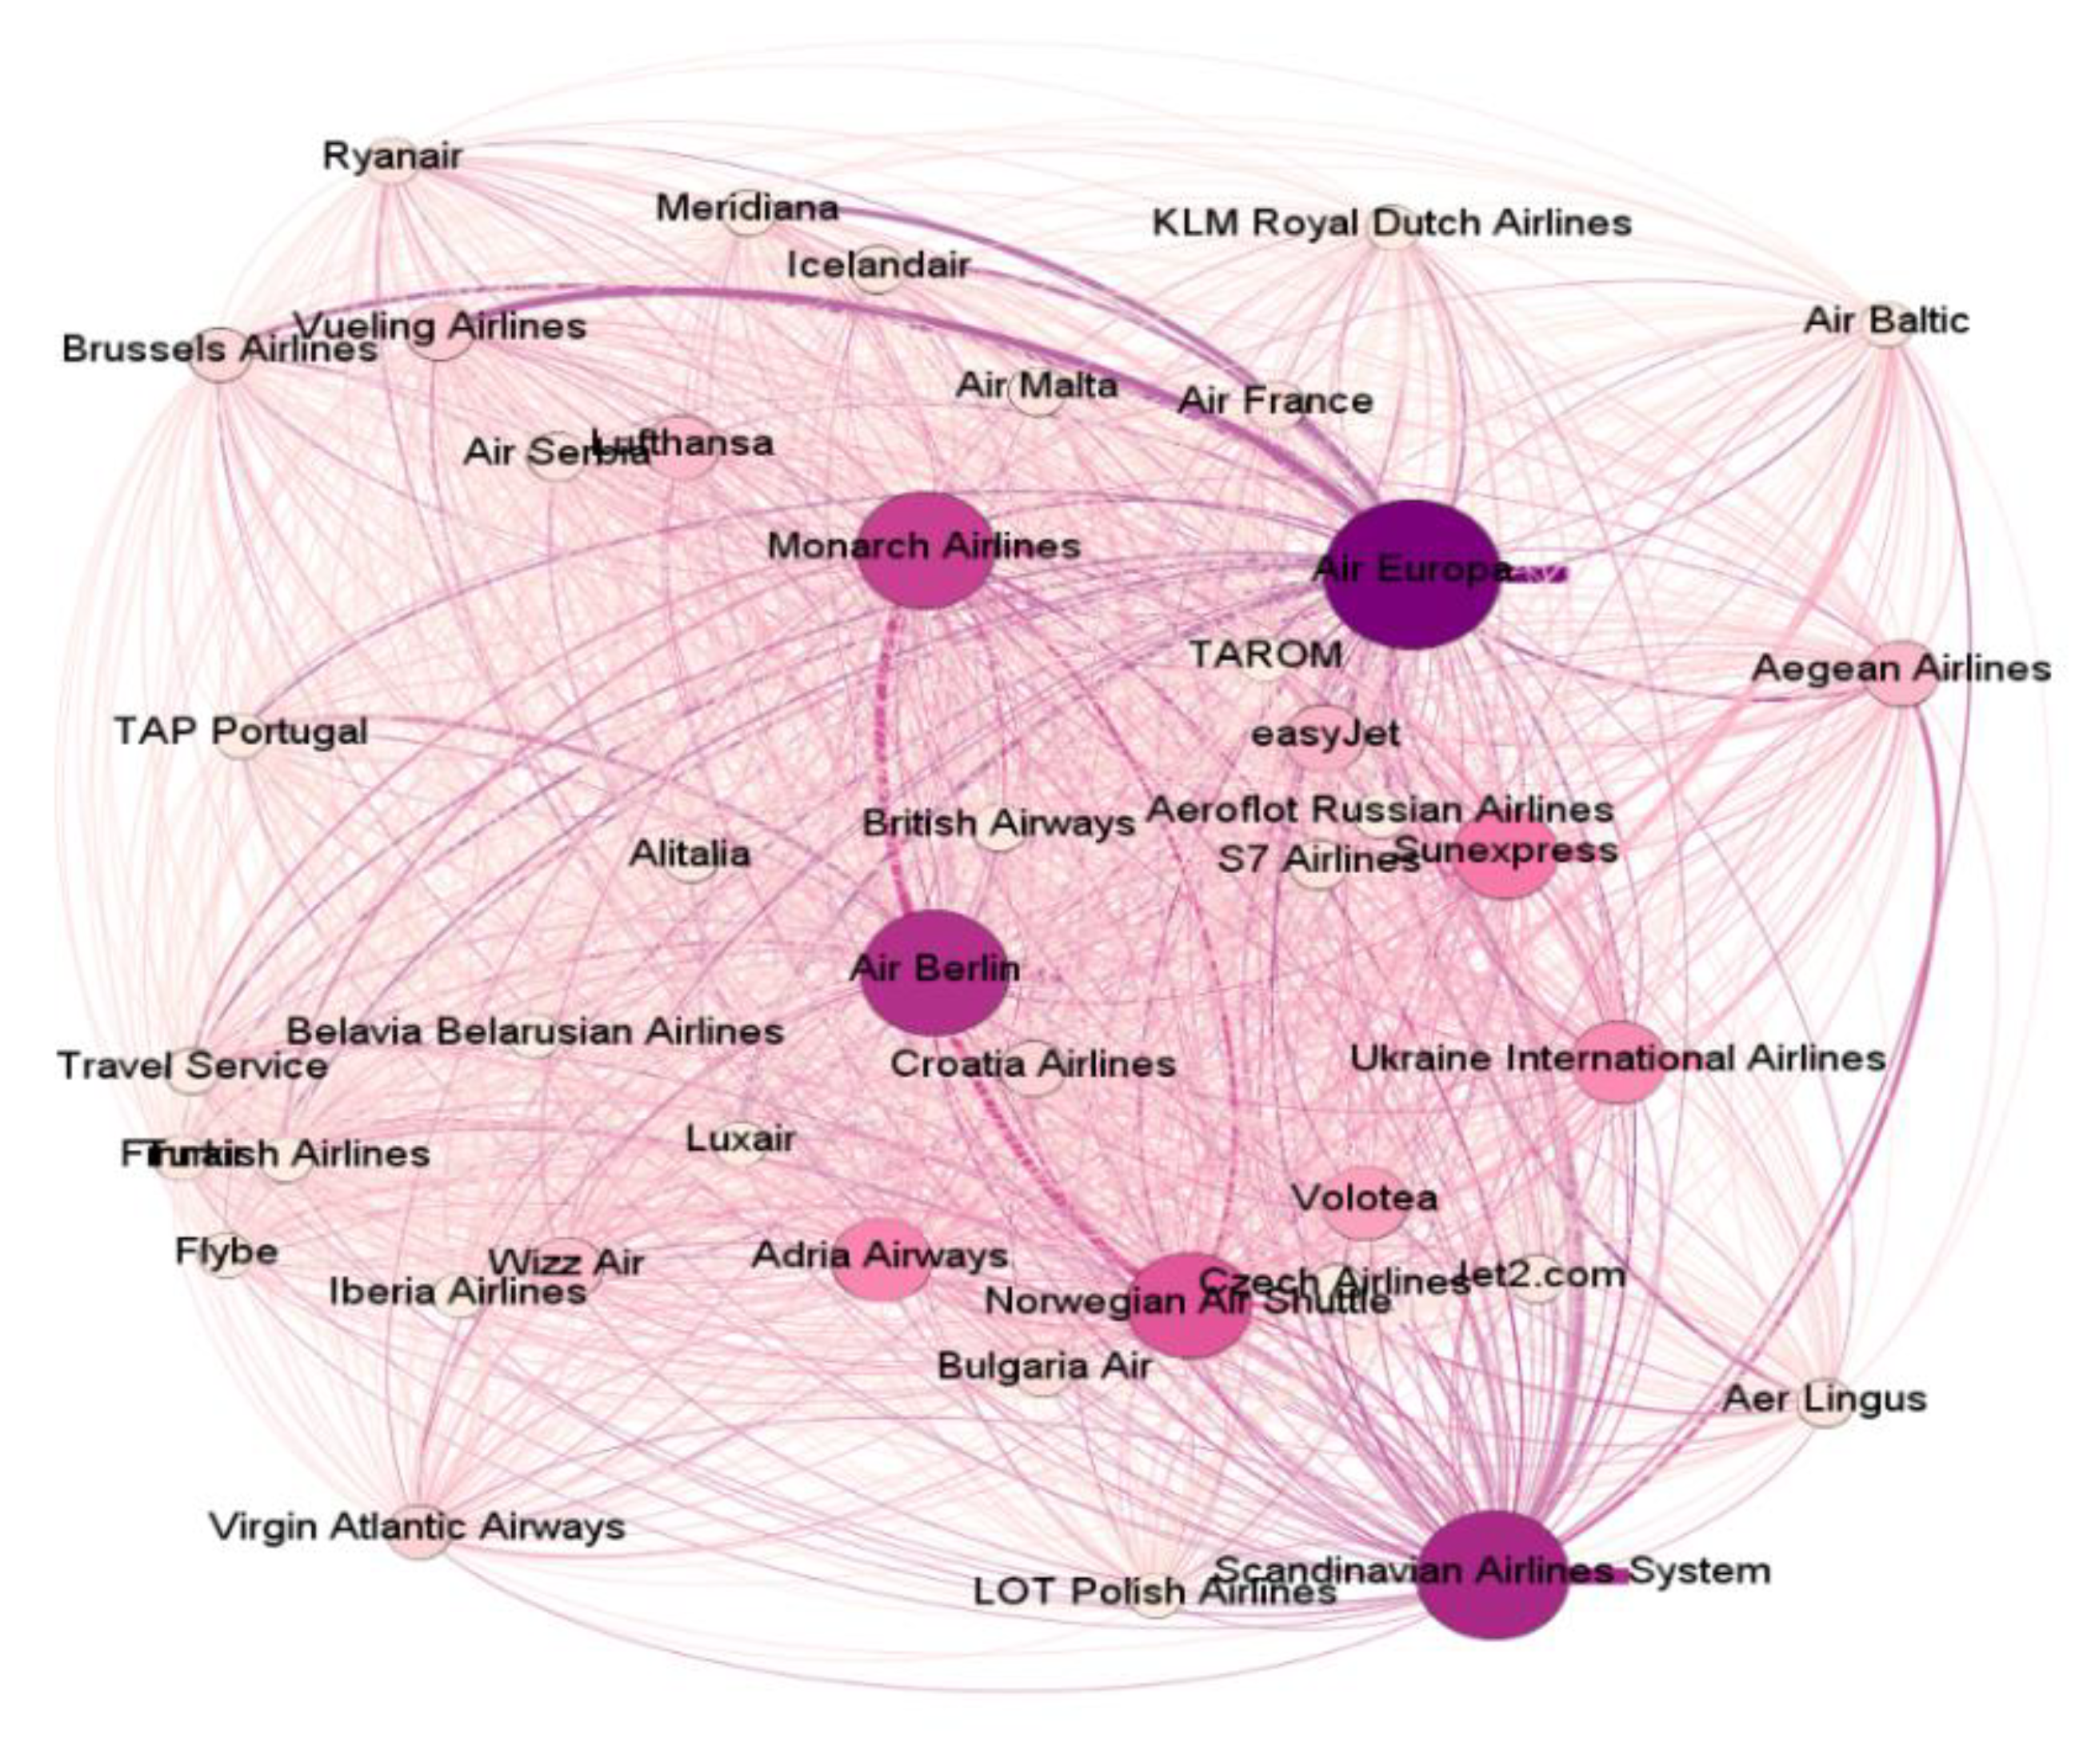 Applied Sciences Free Full Text Multivariate Data Envelopment Analysis To Measure Airline Efficiency In European Airspace A Network Based Approach Html